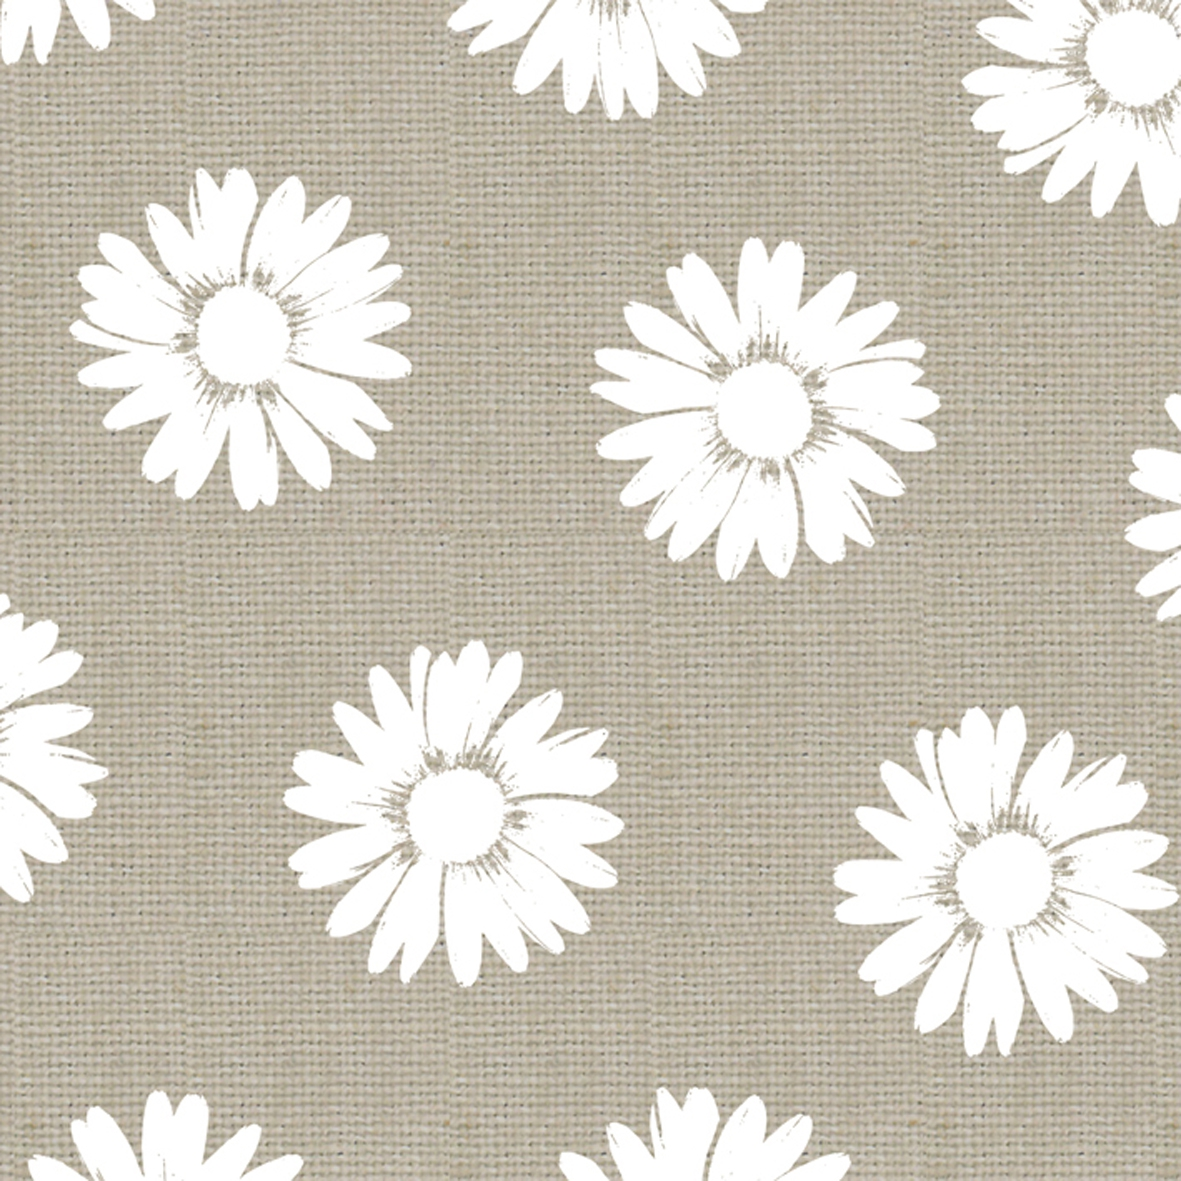 Cocktail Servietten Fashion Daisies taupe white 25x25 cm,  Blumen -  Sonstige,  Everyday,  cocktail servietten,  Blumen